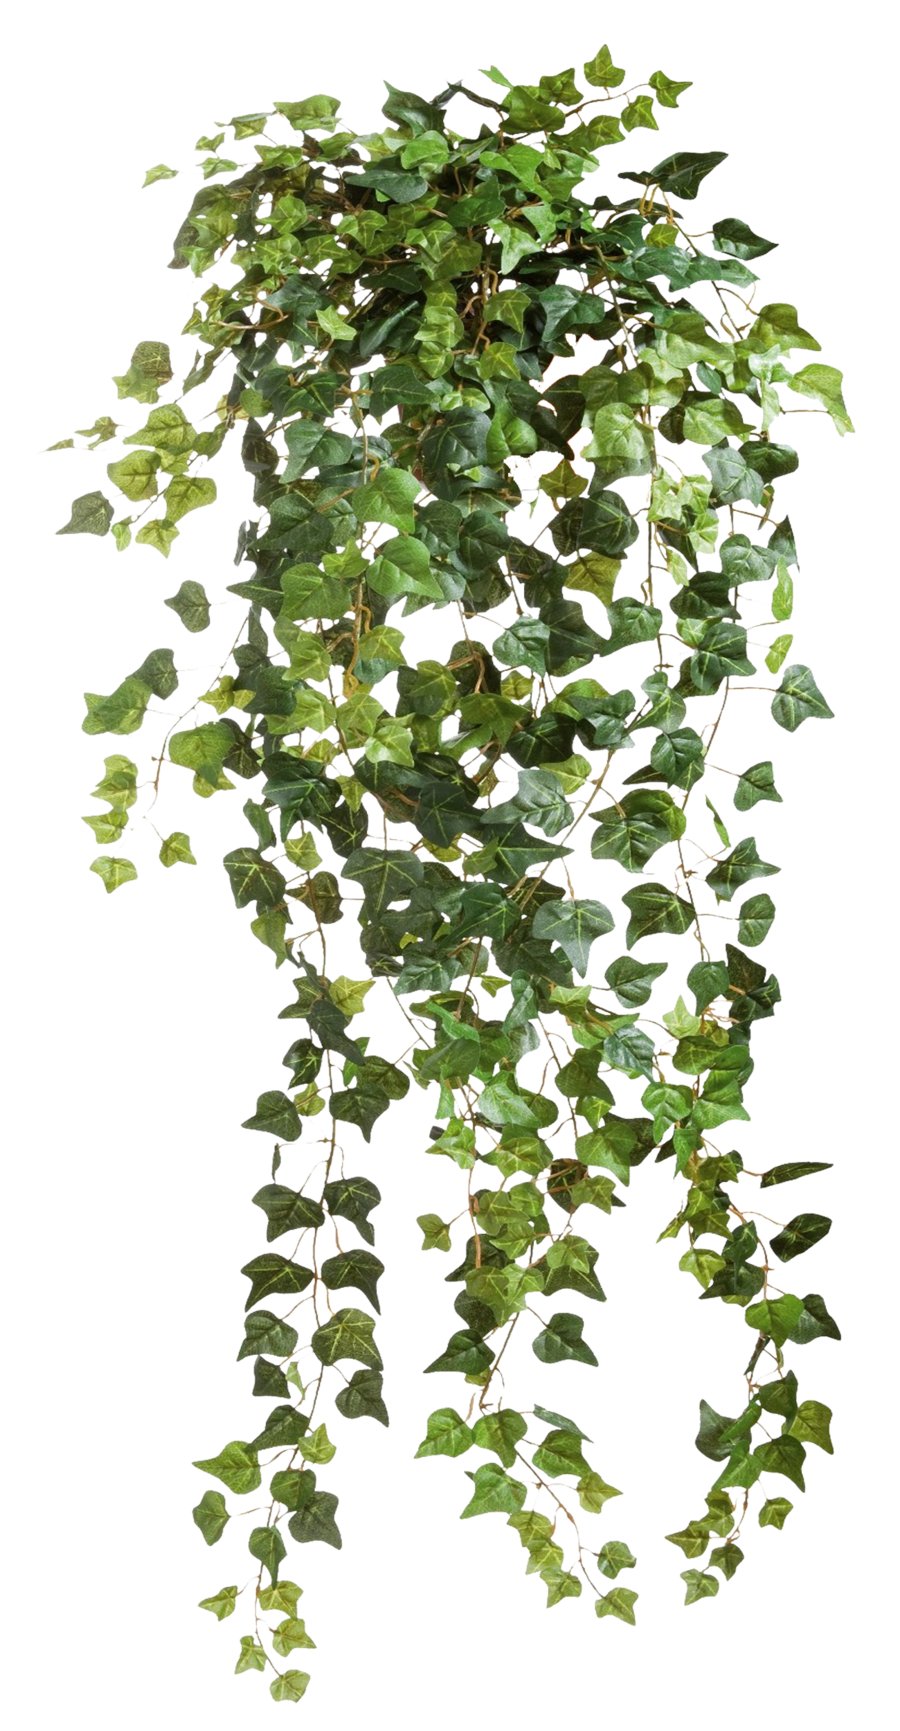 Transparent png pictures free. Vines clipart creeper plant